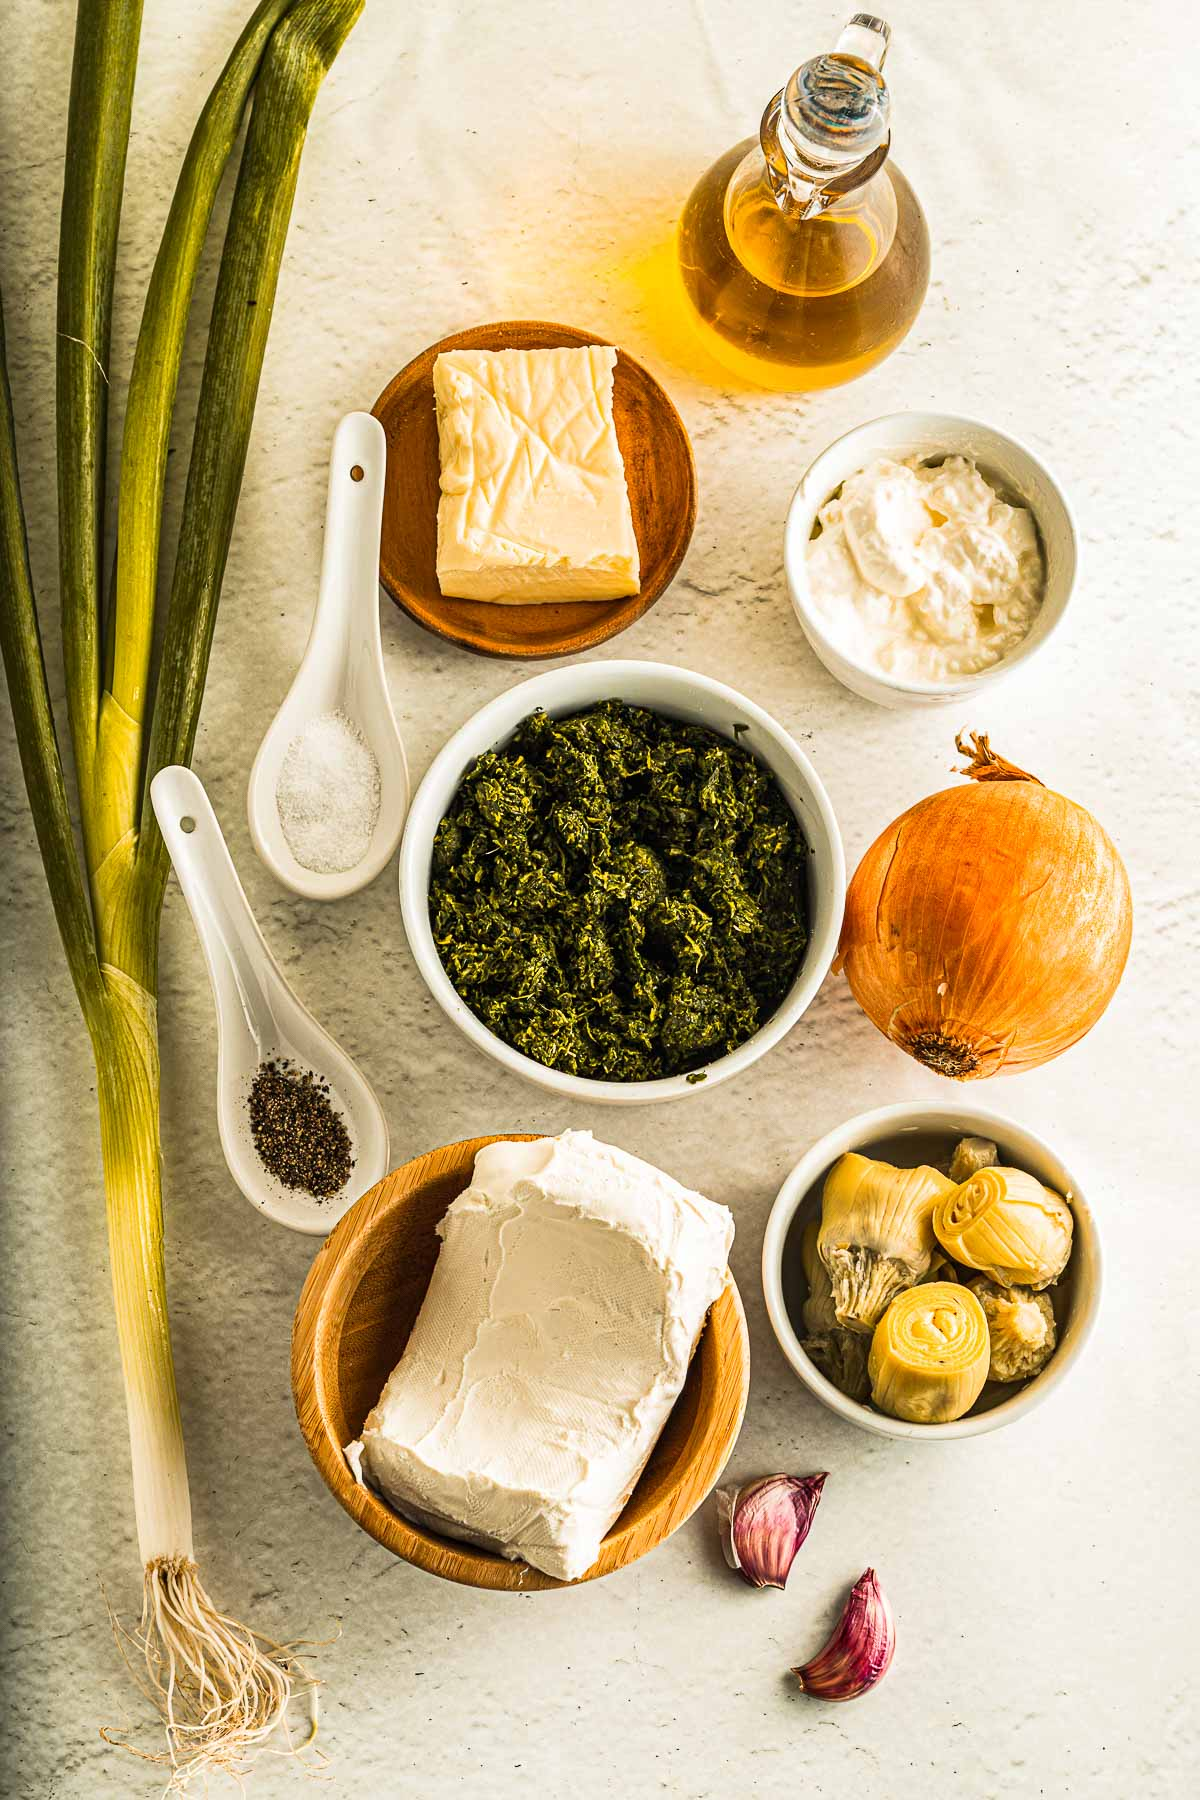 ingredients for keto spinach artichoke dip